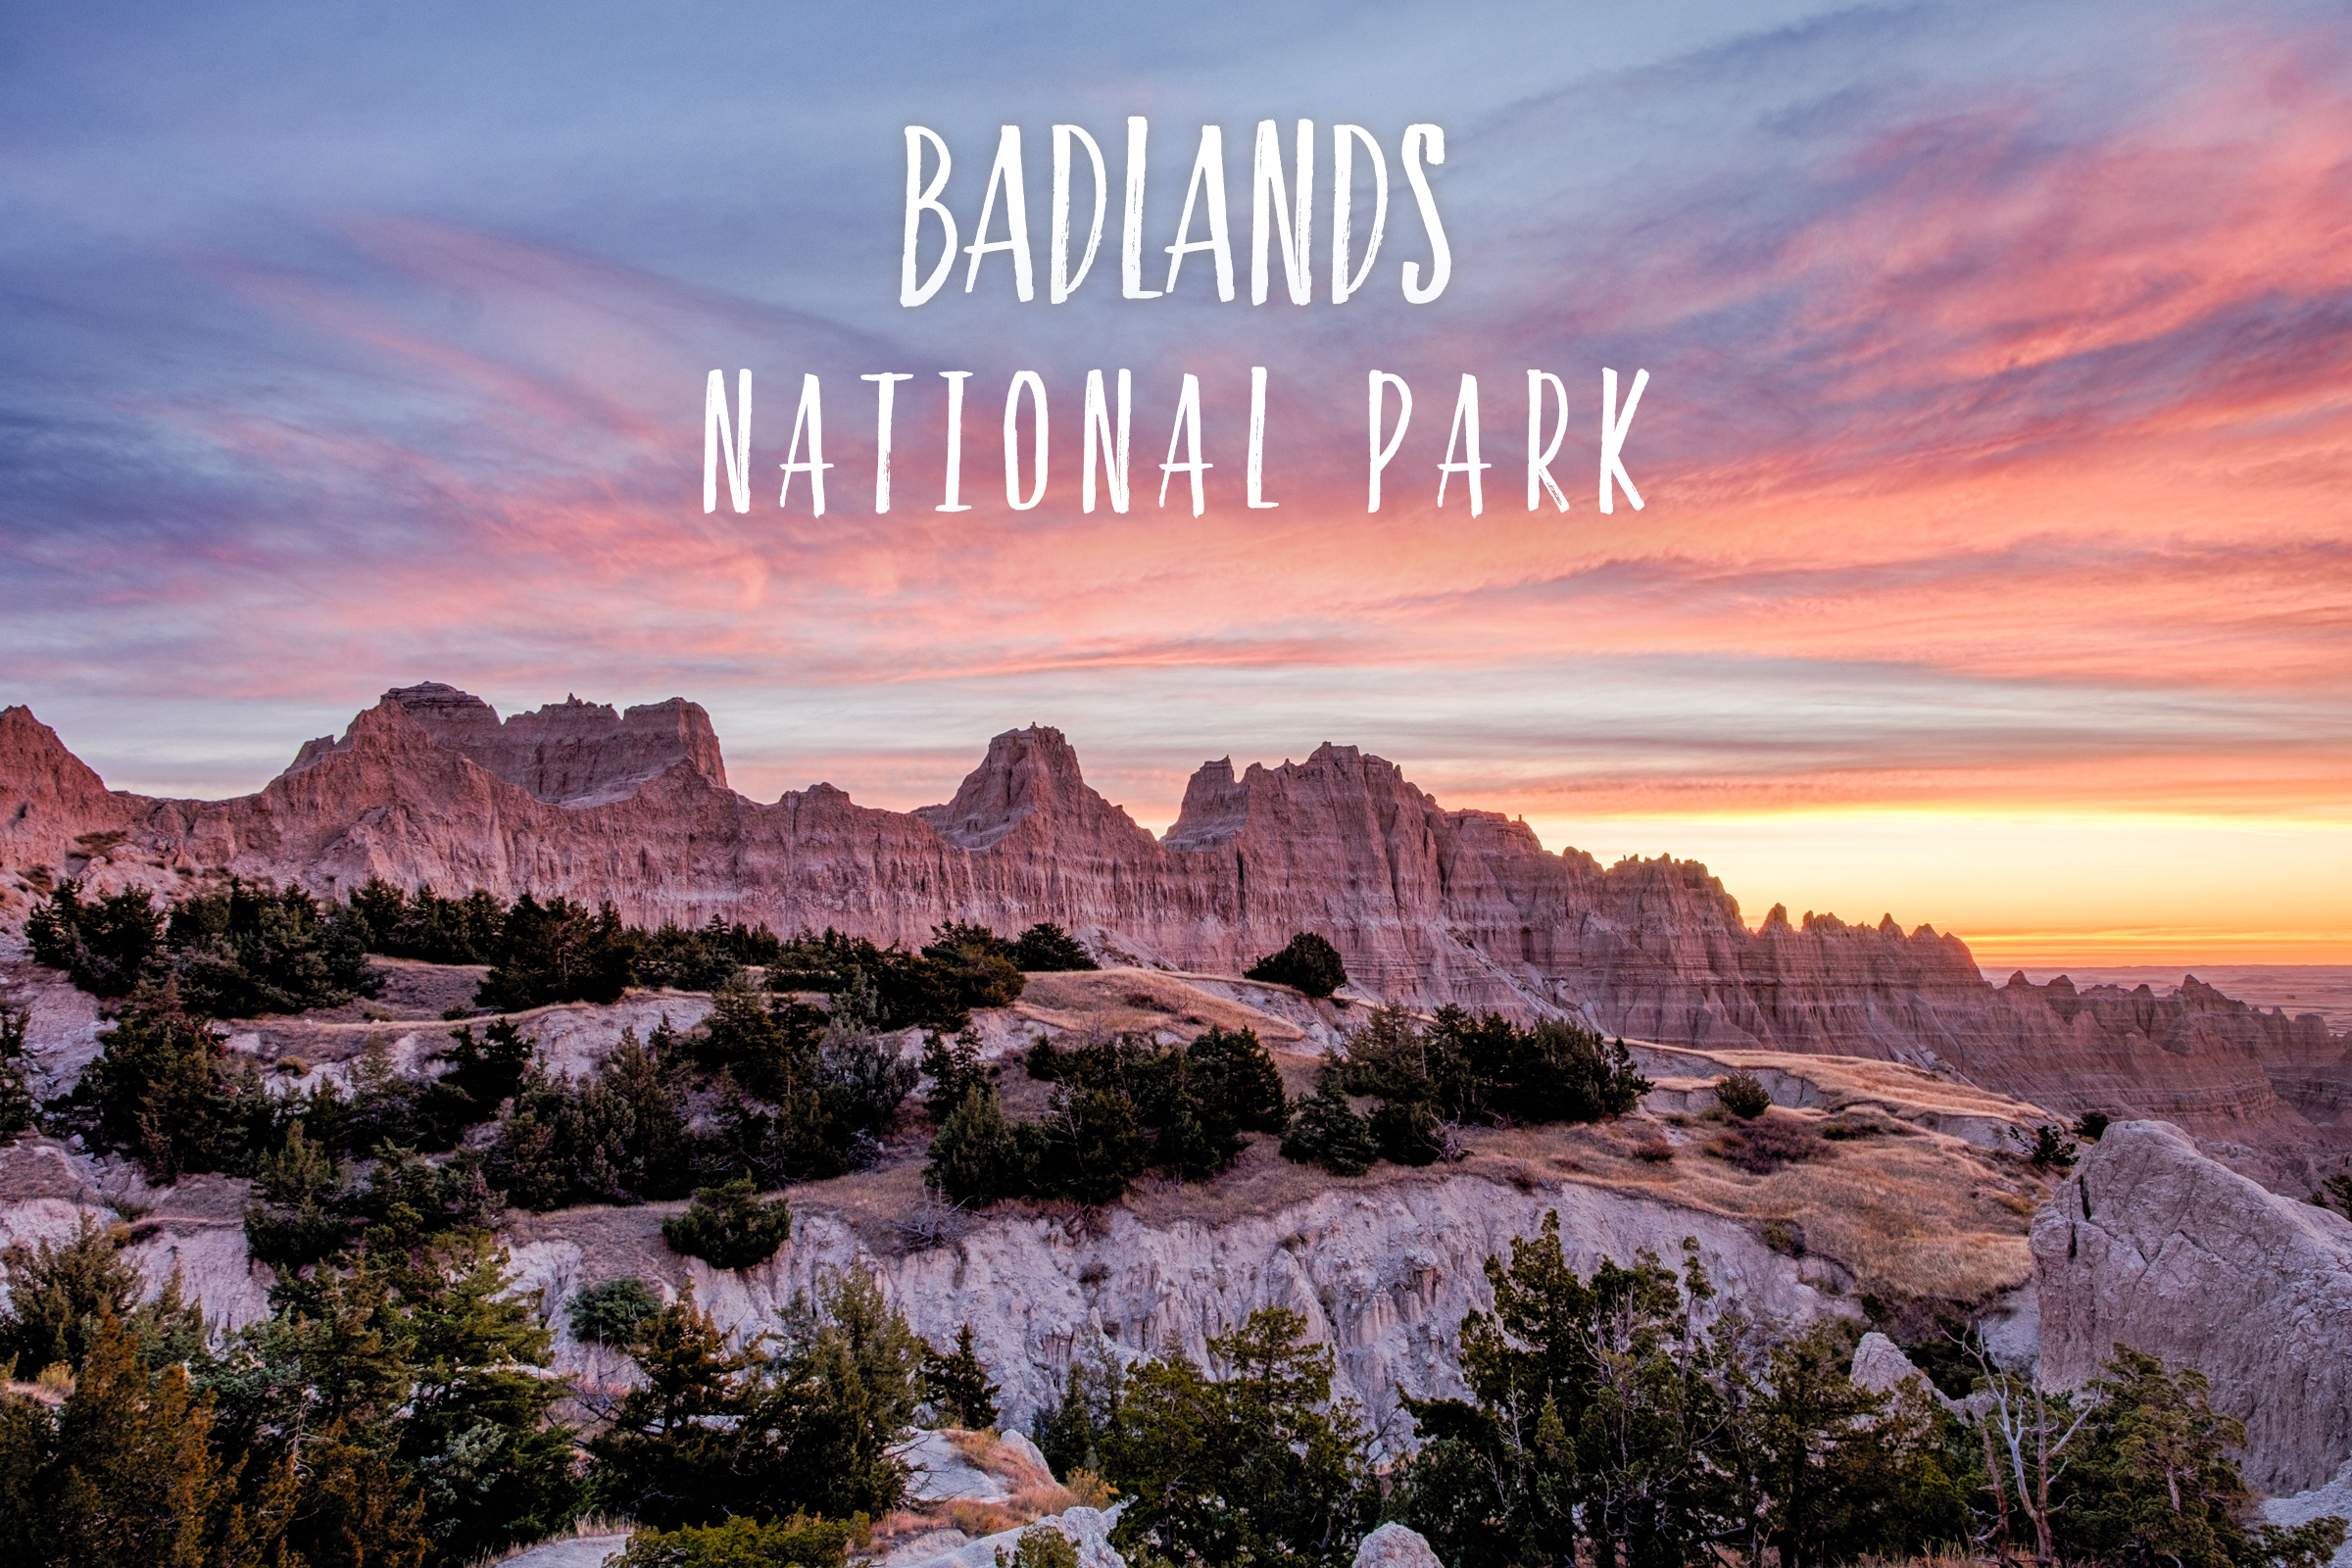 Park 44/59: Badlands National Park in South Dakota